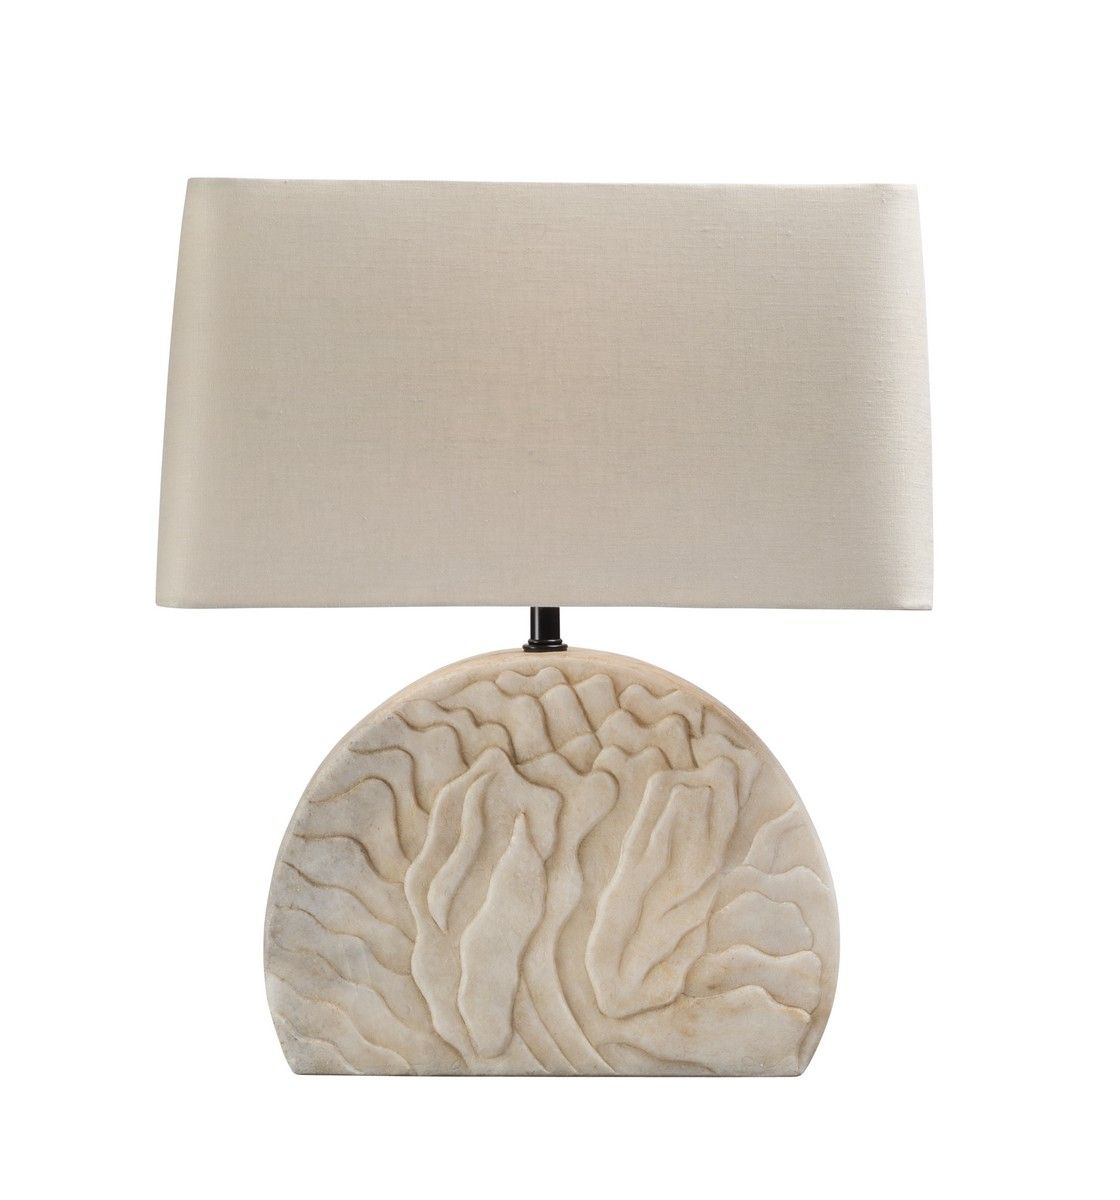 Obiect de iluminat Robert Kuo - Shan Table Lamp